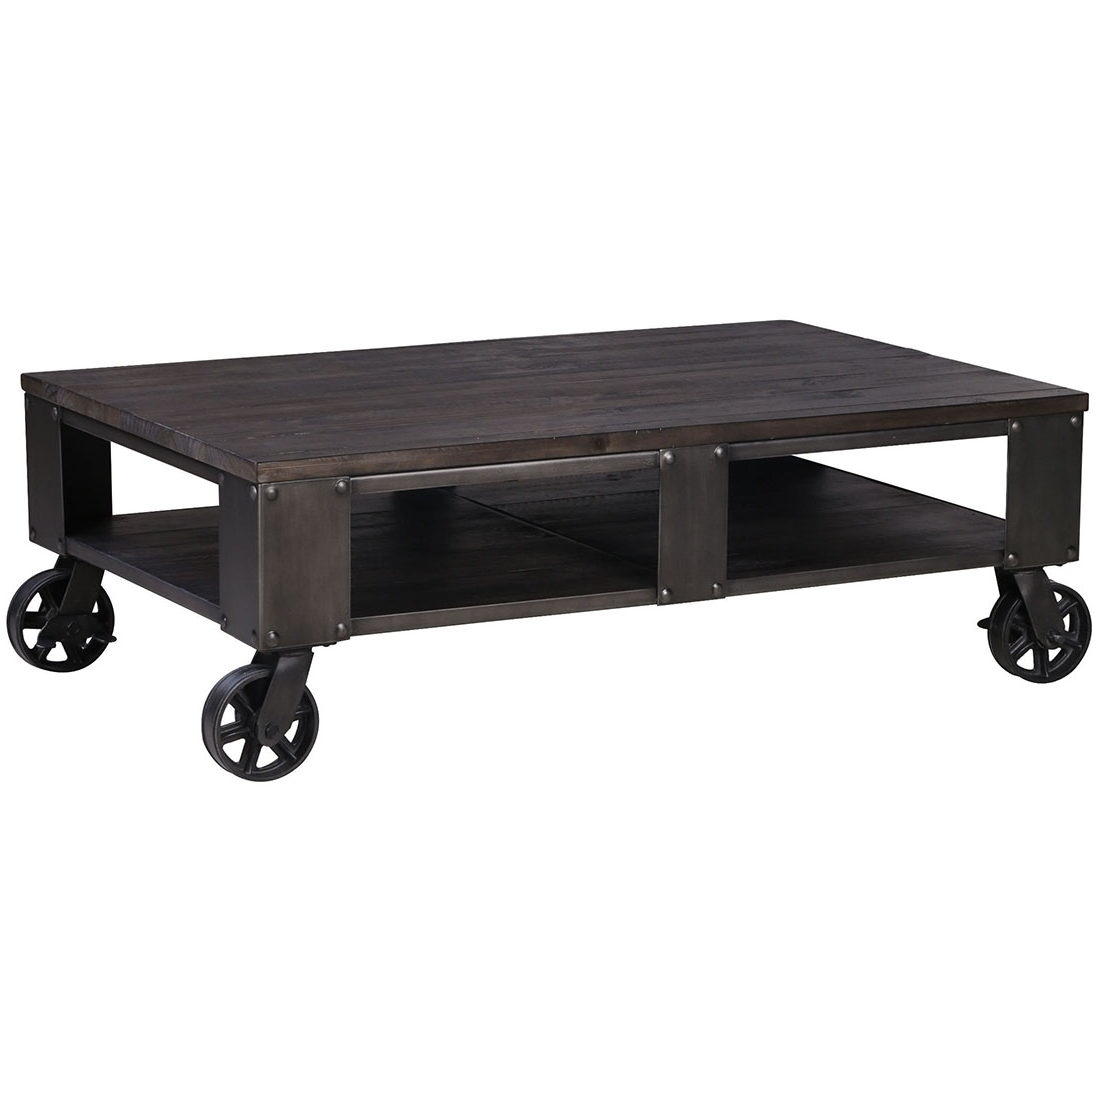 Mill Coffee Table - Intaglia Home & Garden within Mill Coffee Tables (Image 17 of 30)